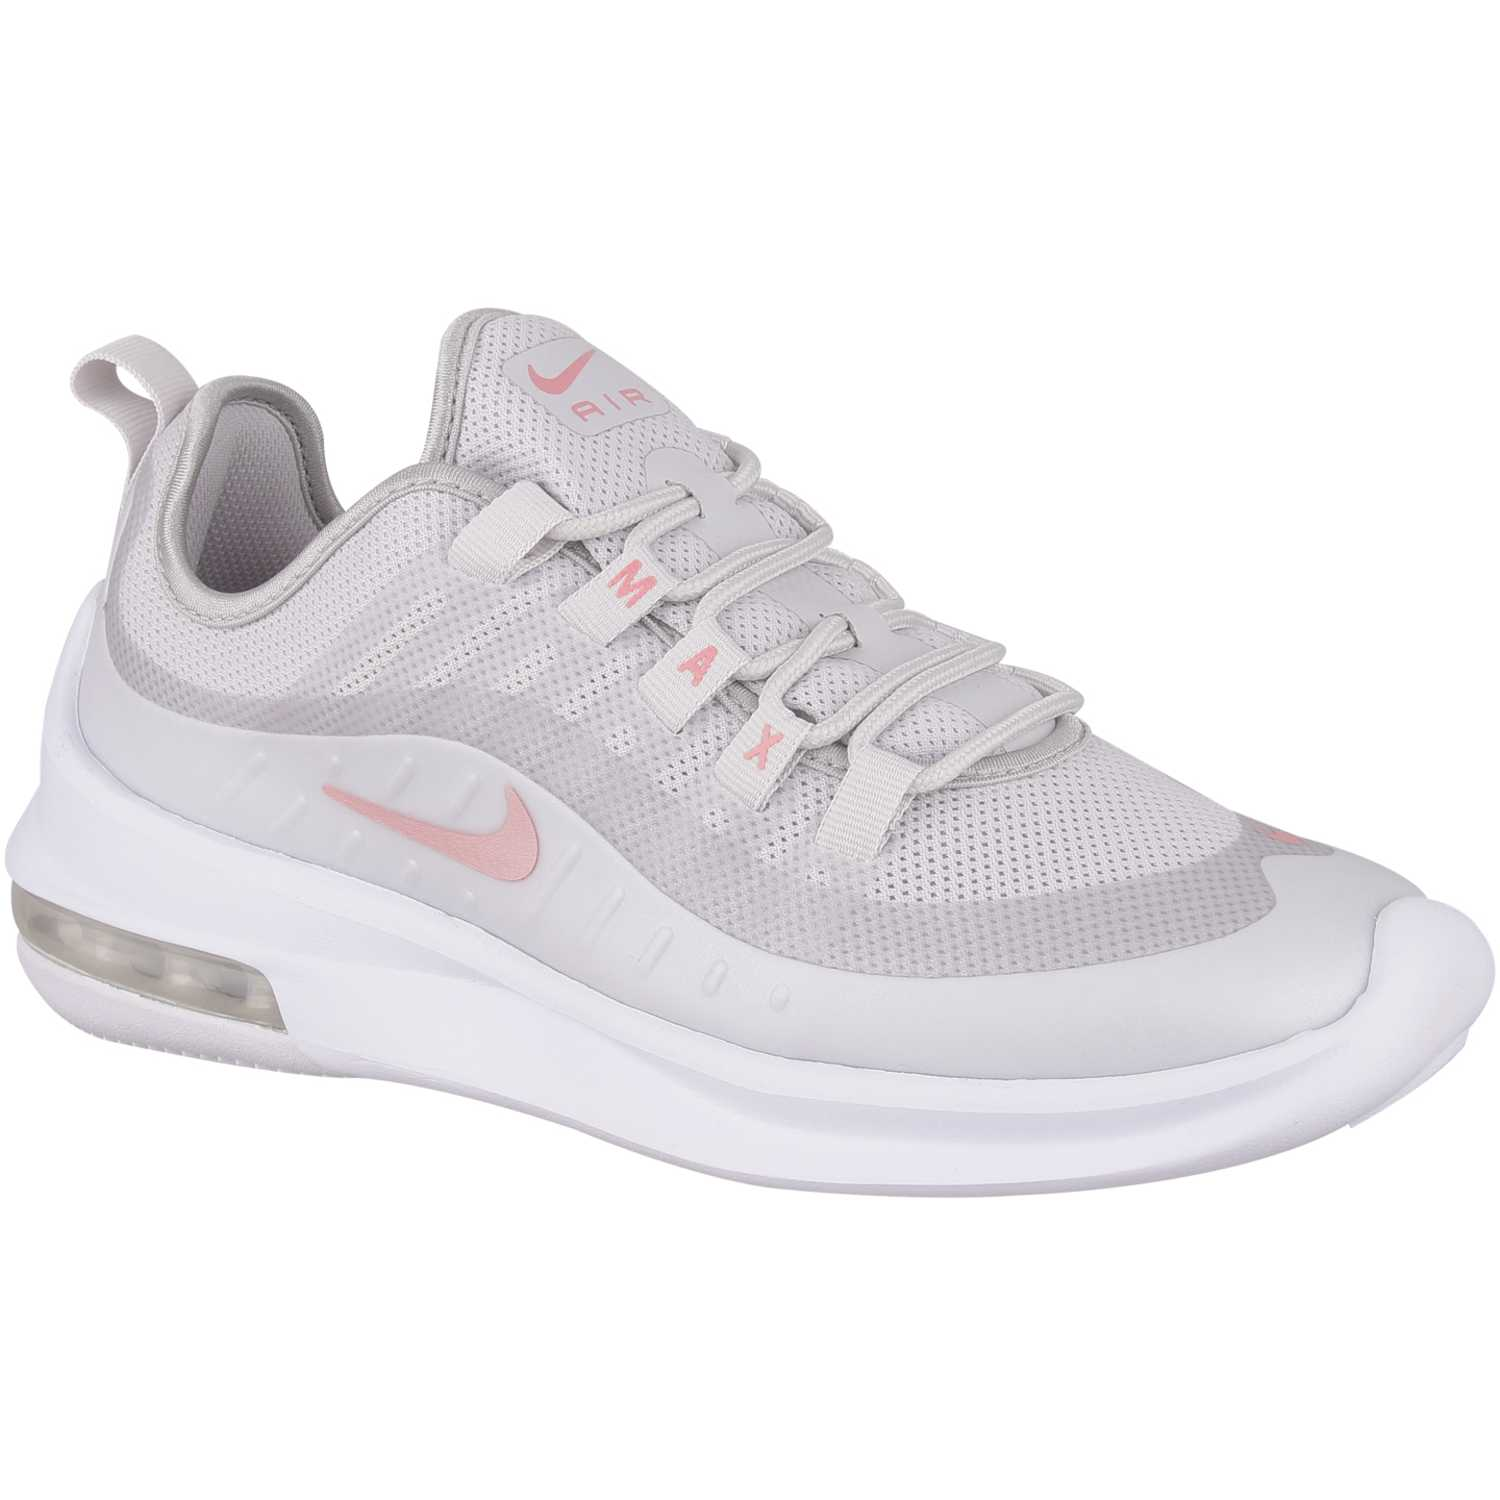 finest selection cf047 02afc Zapatilla de Mujer Nike Gris   blanco wmns nike air max axis